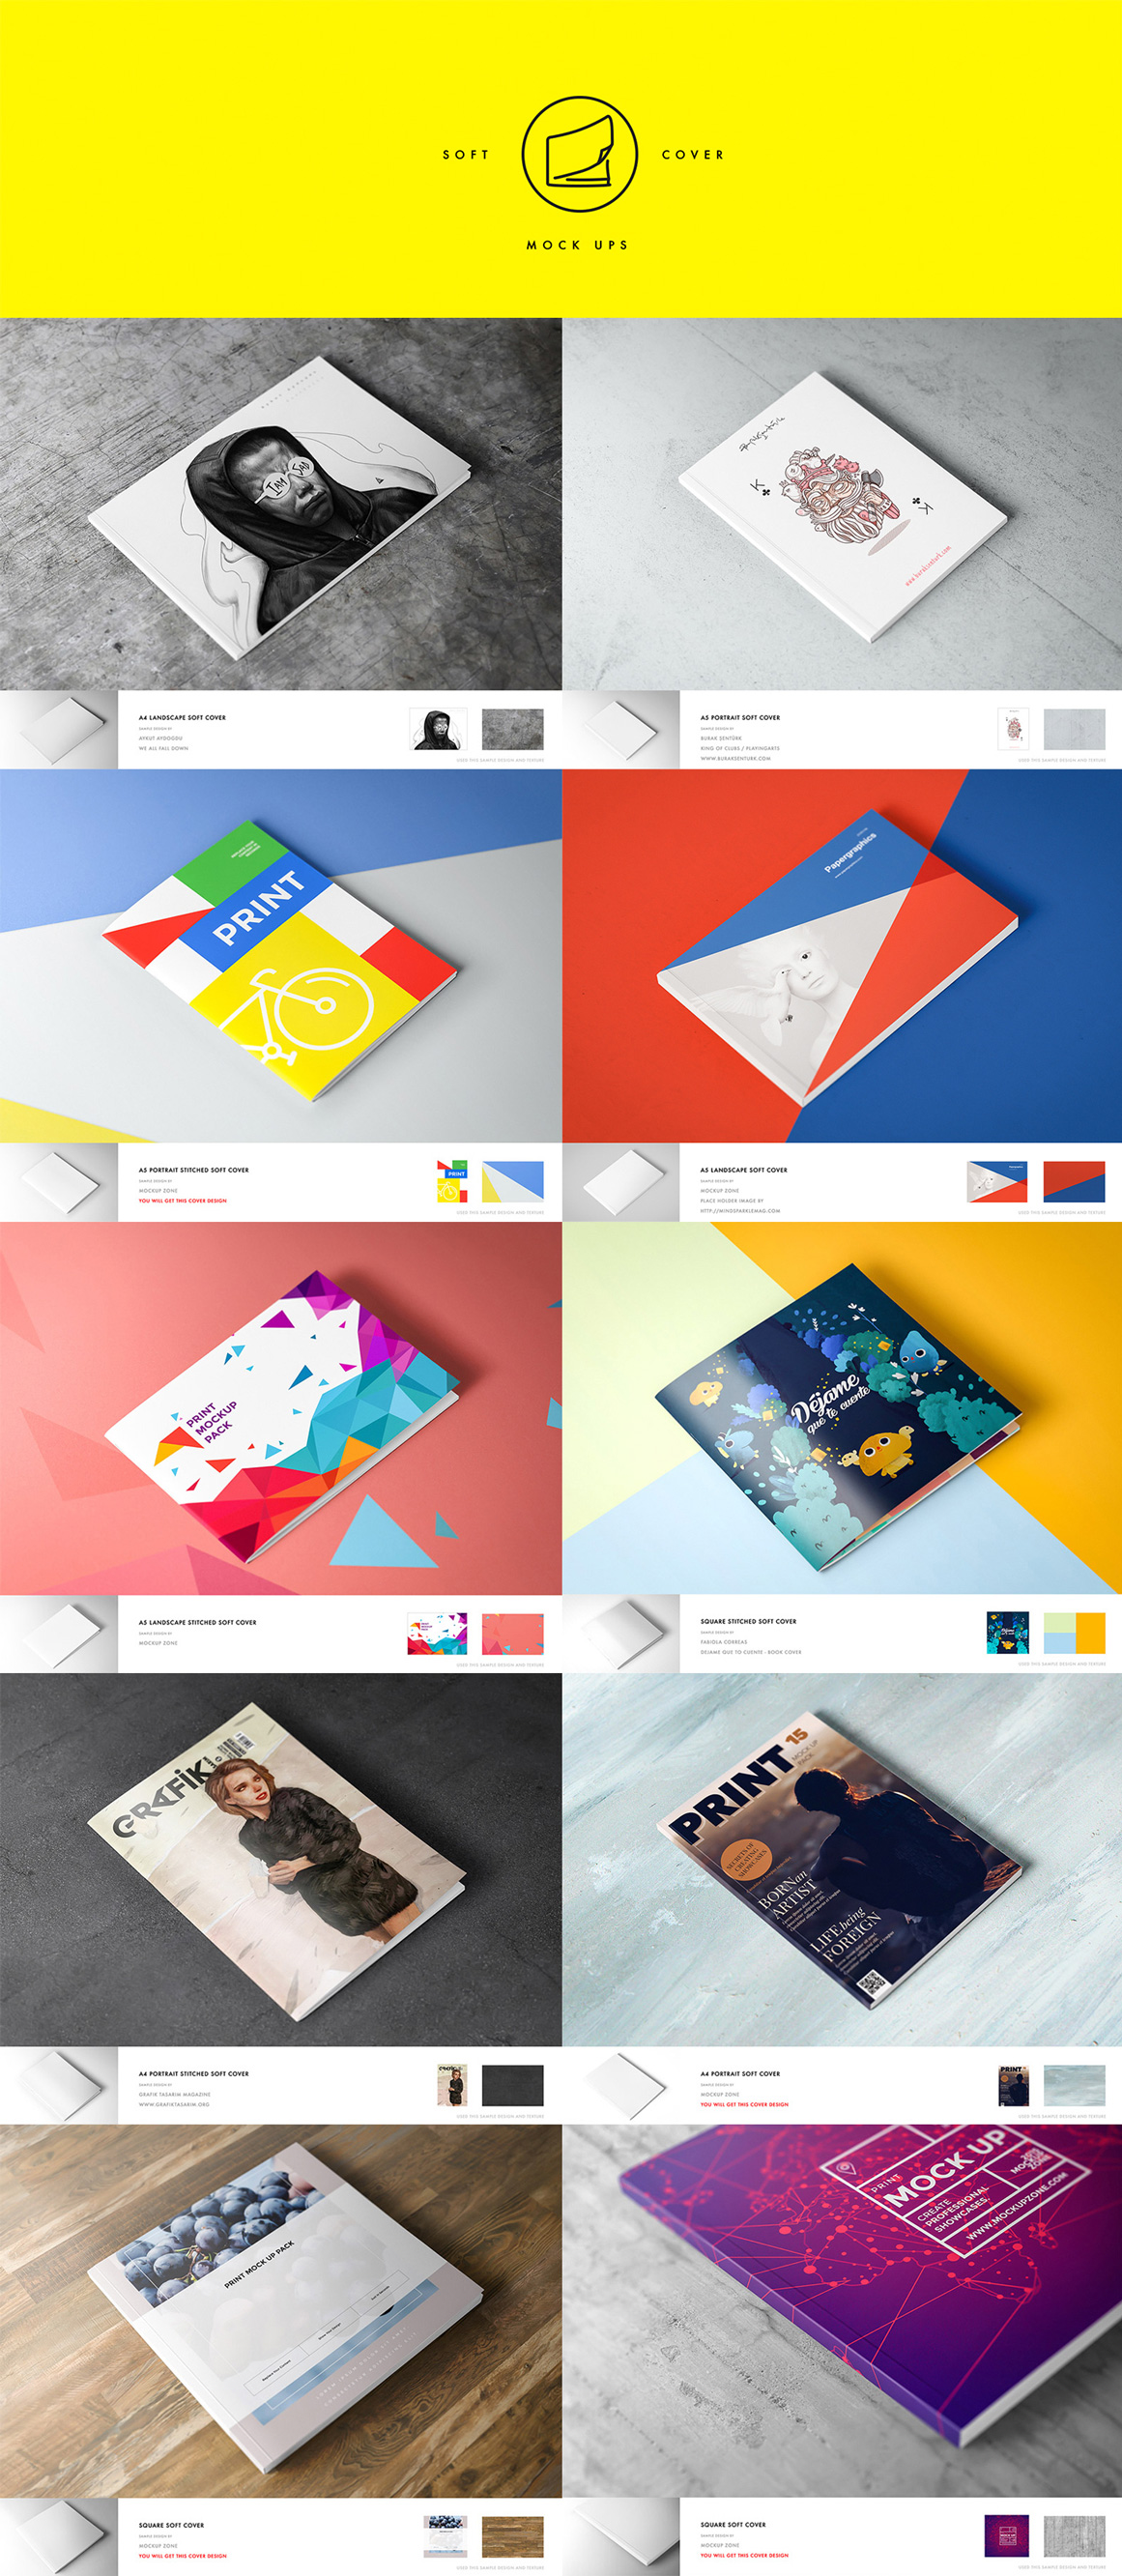 10 Different Soft Cover Book Mockups (Vol.1)